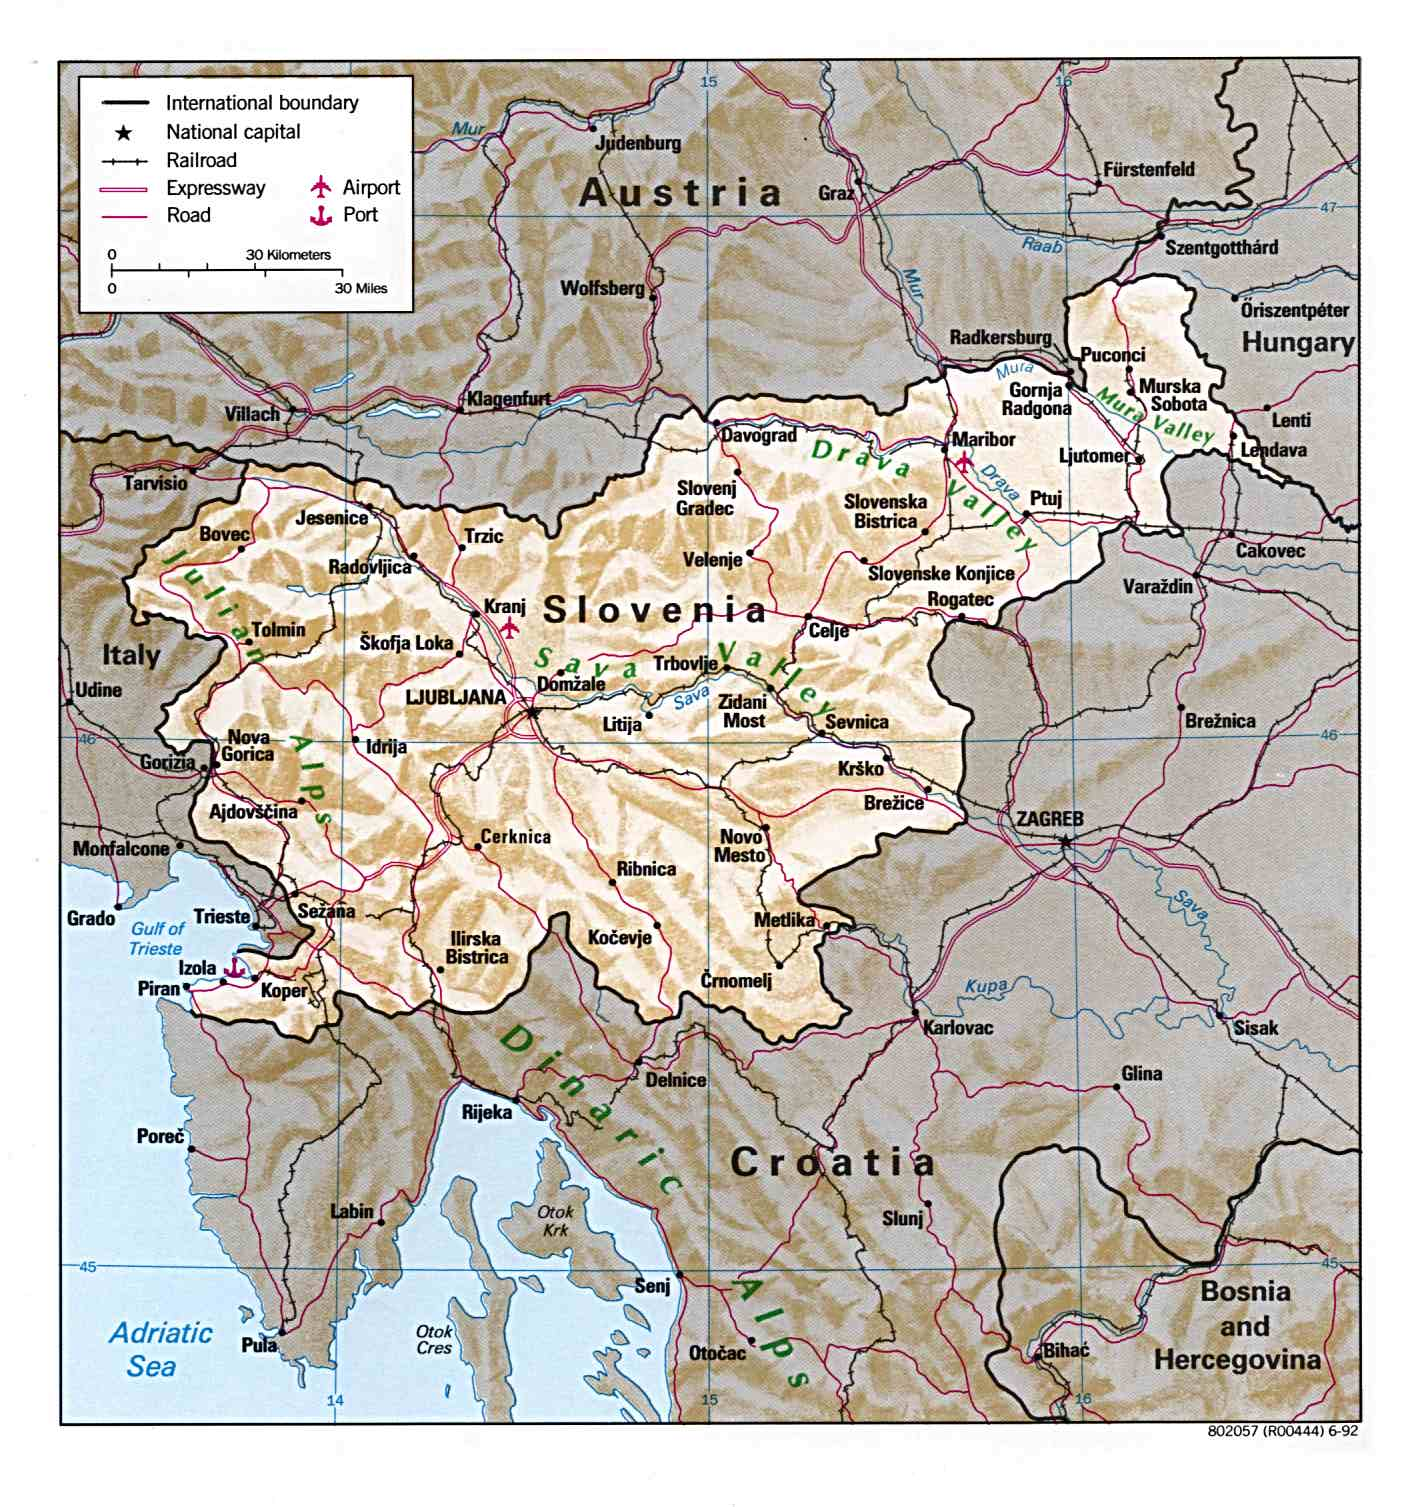 Free Europe Maps - Slovenia map download